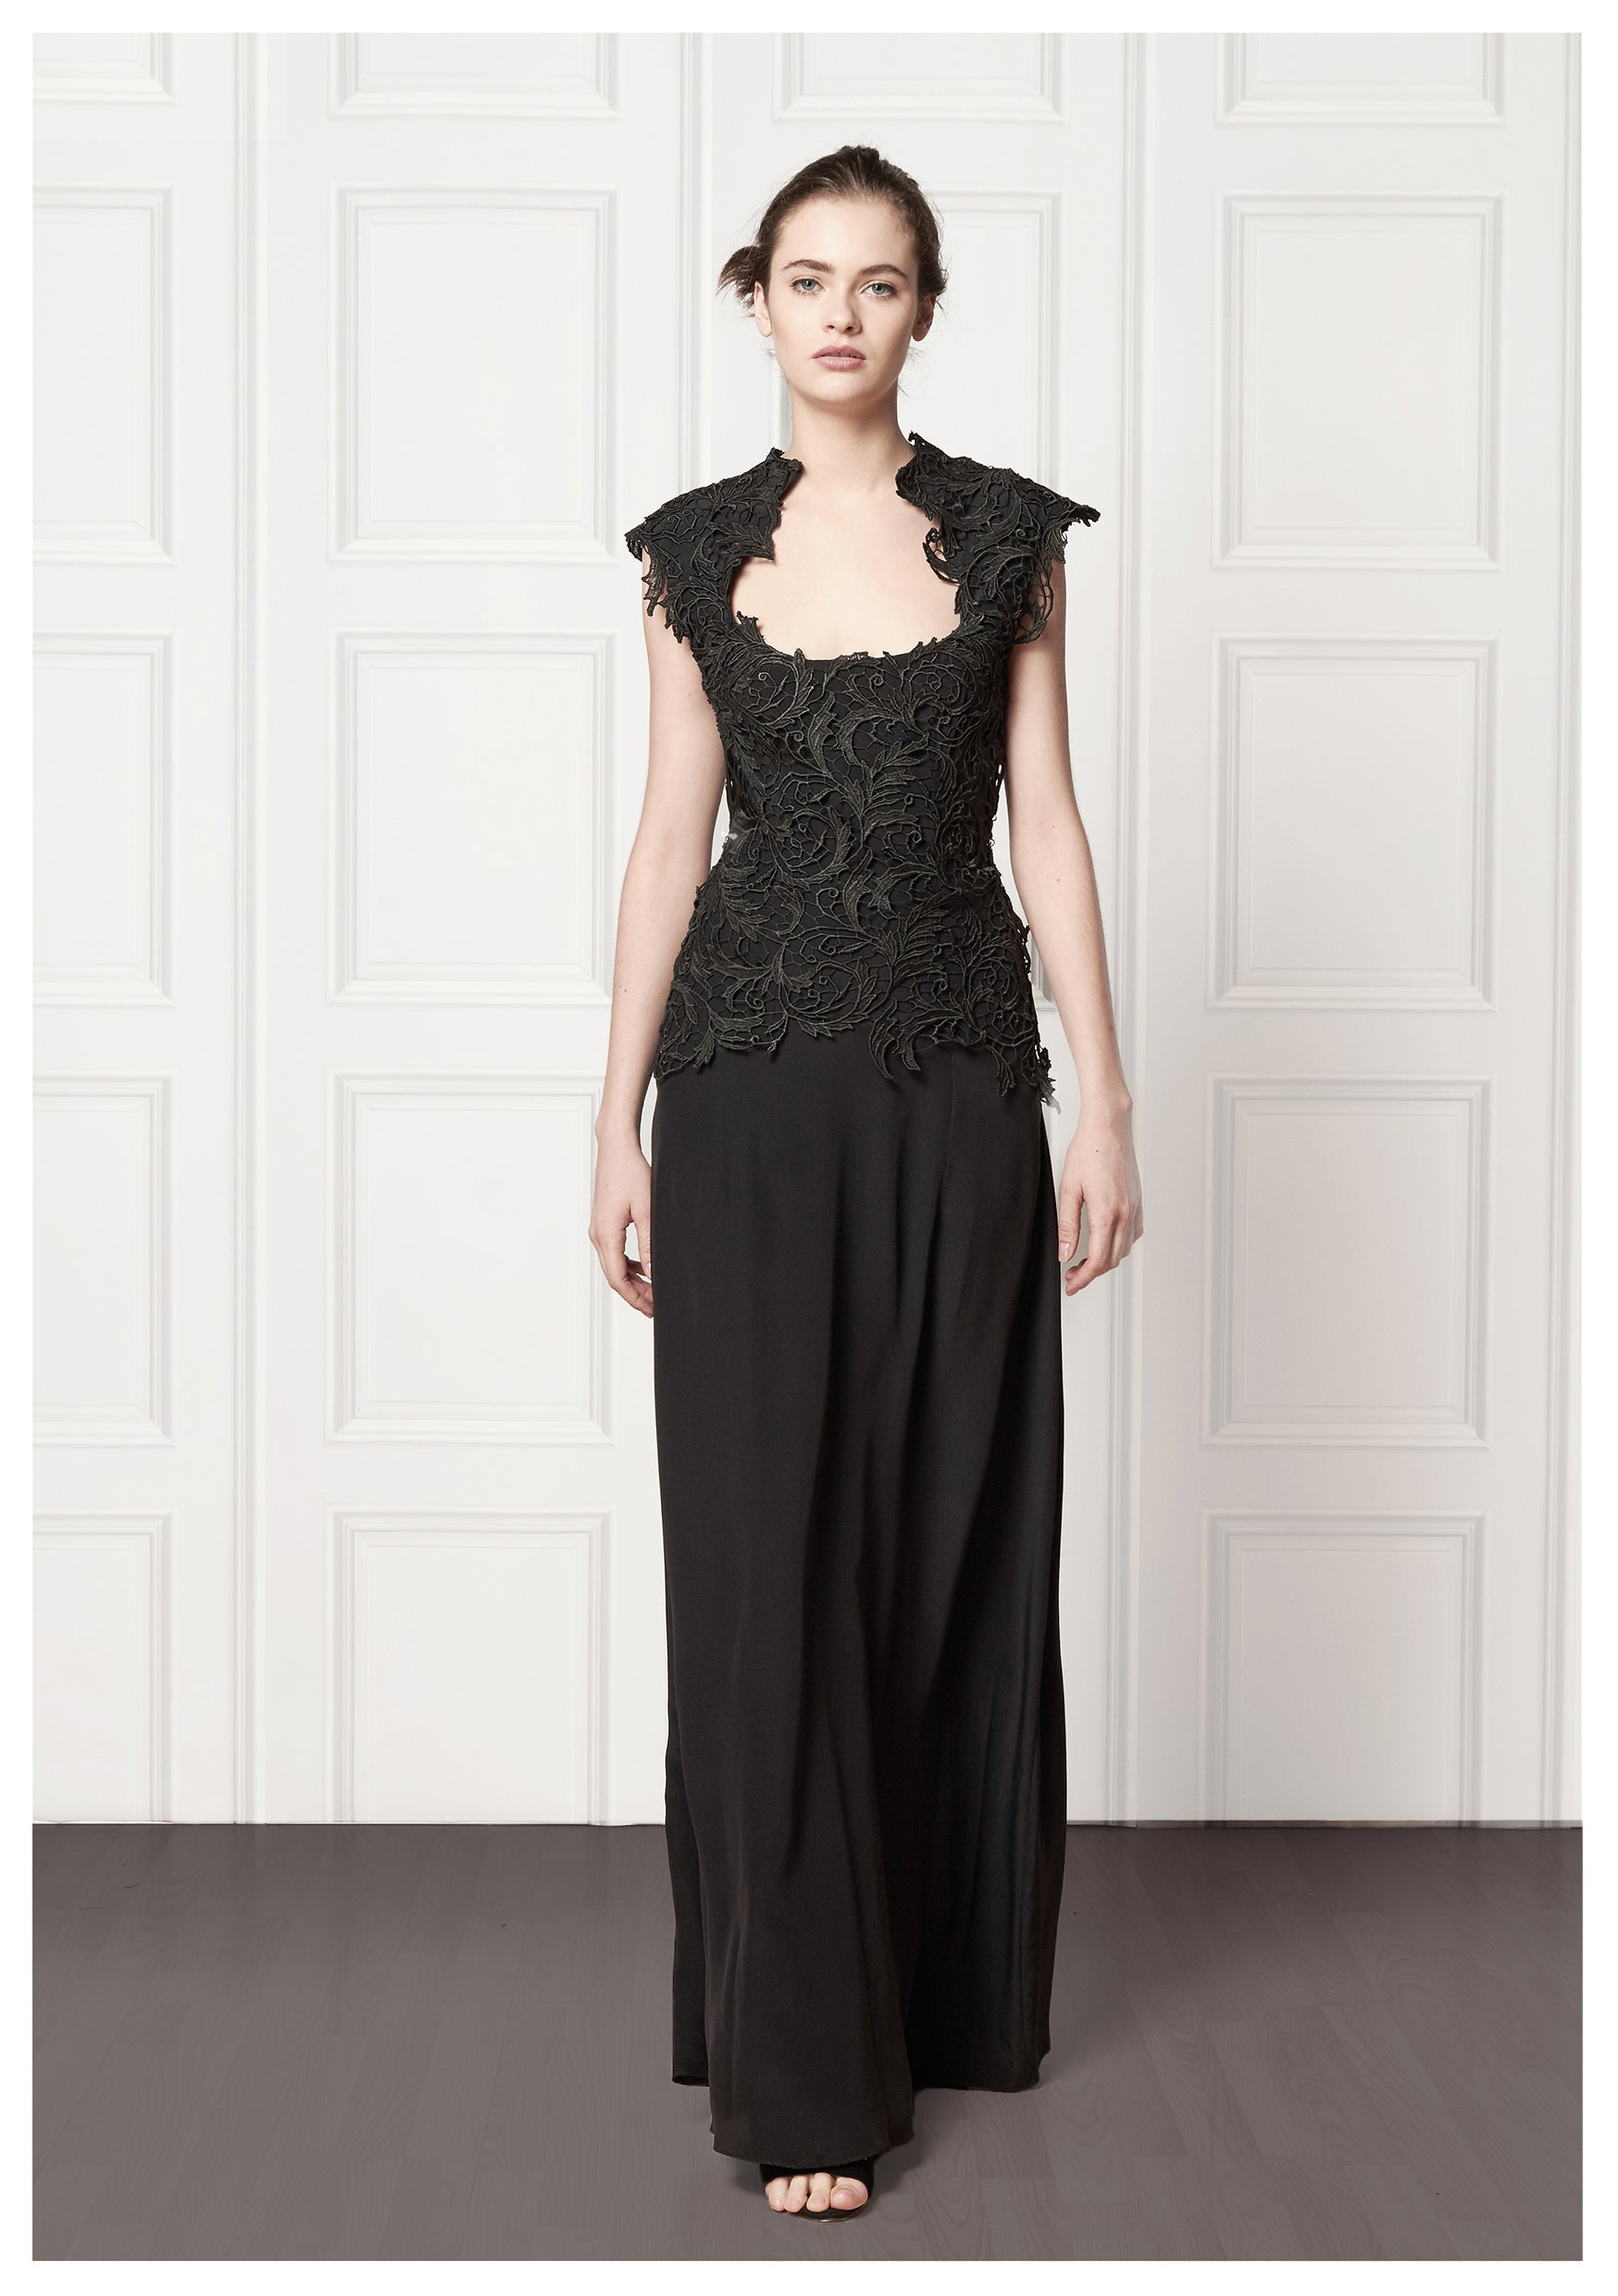 Black, full-length gown with lace overlay and short capped lace sleeves